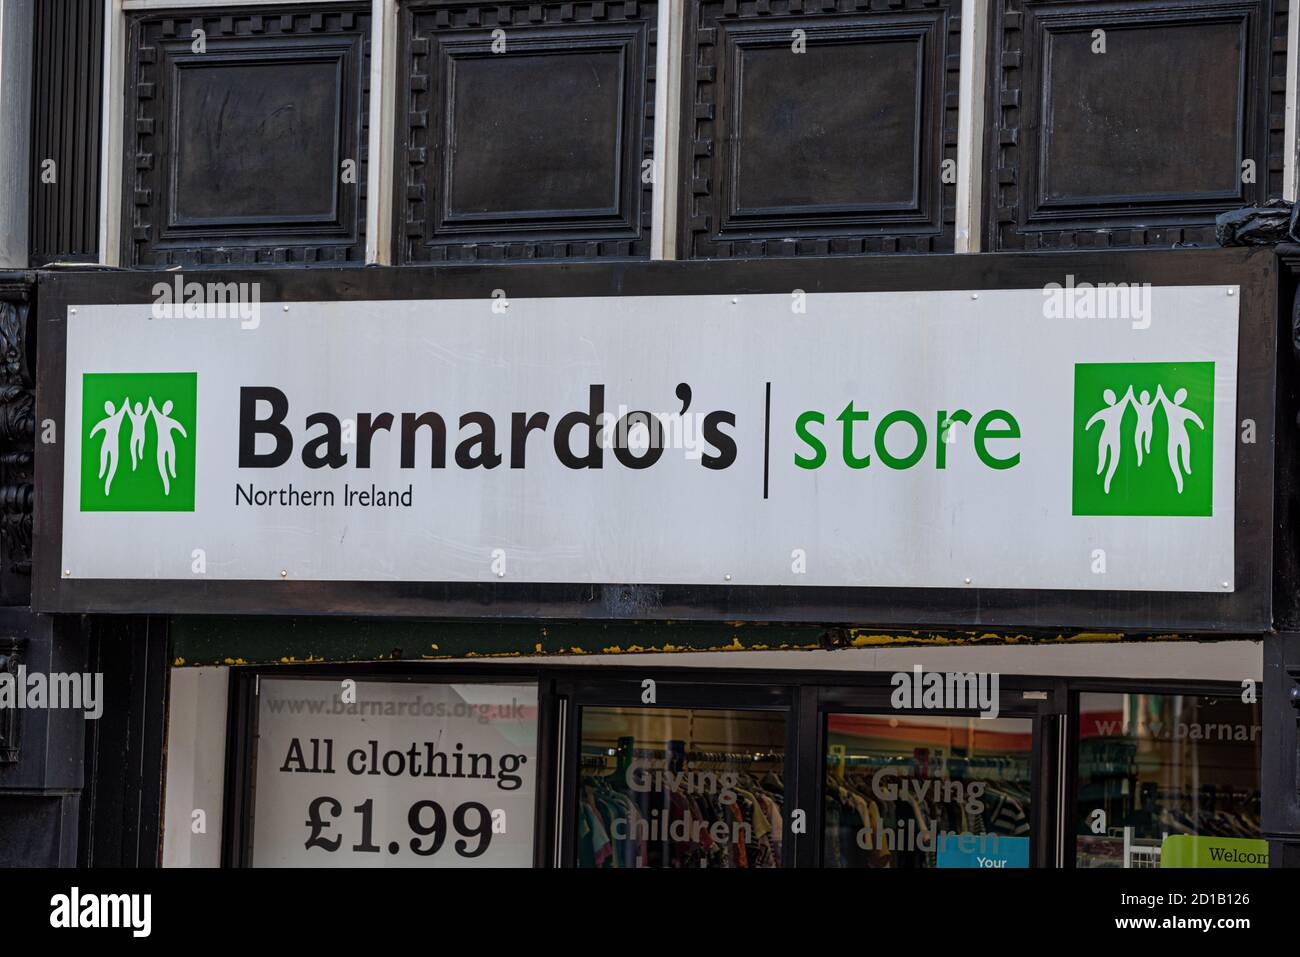 Derry, Northern Ireland- Sept 27, 2020: The front entrance and sign for Barnardo's store l in Derry Northern Ireland. Stock Photo